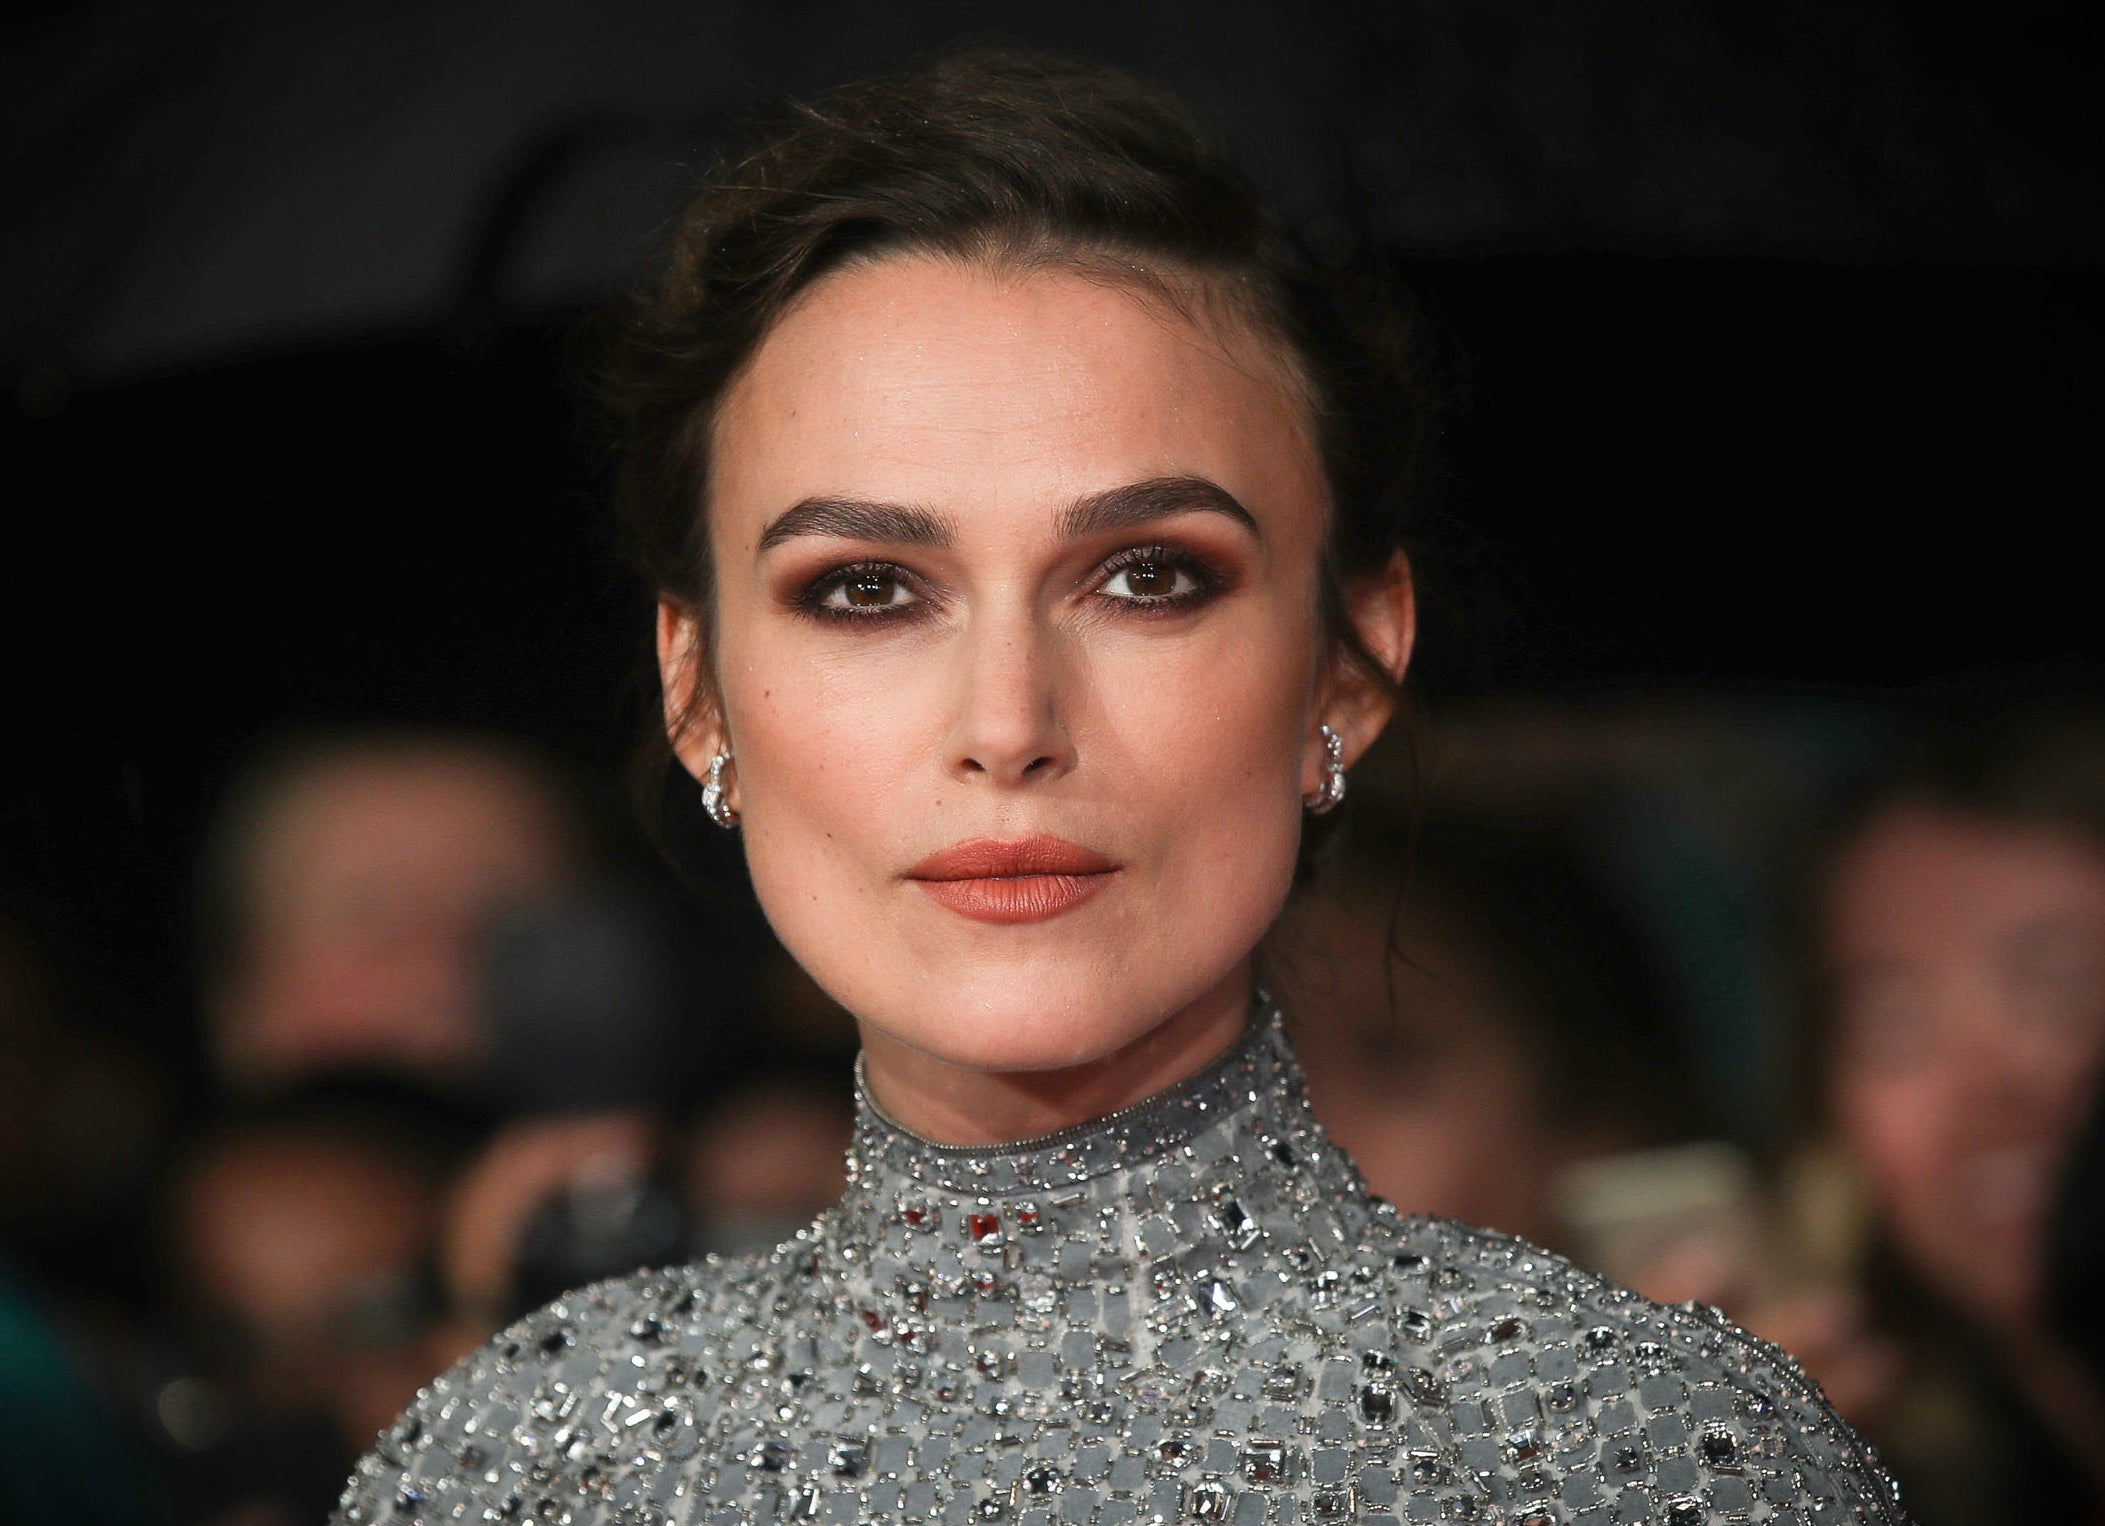 Keira looks serious while attending an event